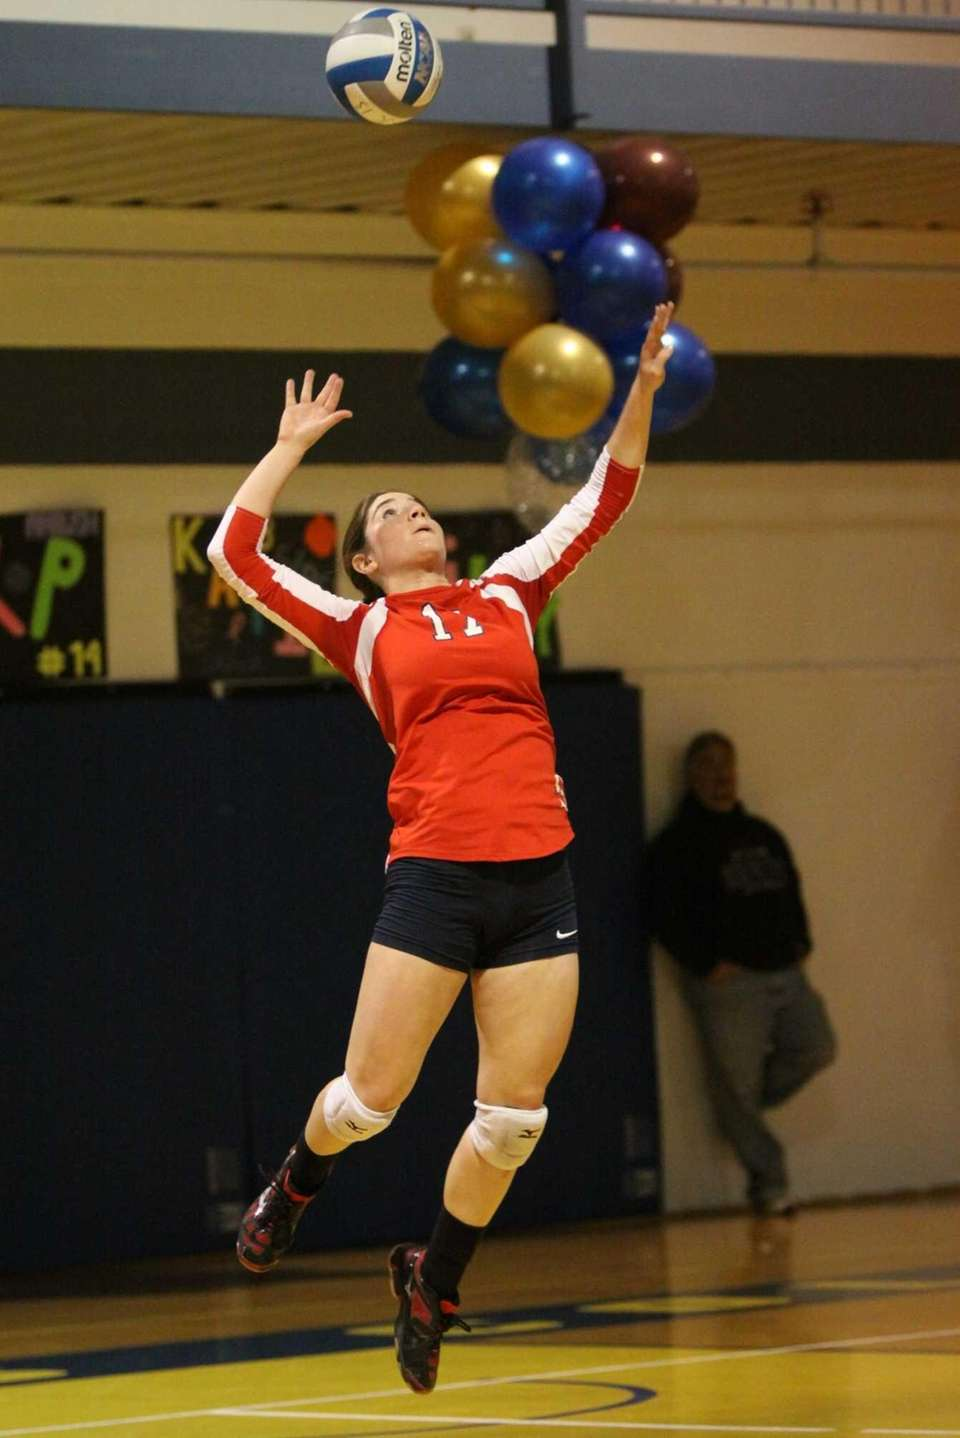 Smithtown East's Dani Nizich serves against Massapequa during